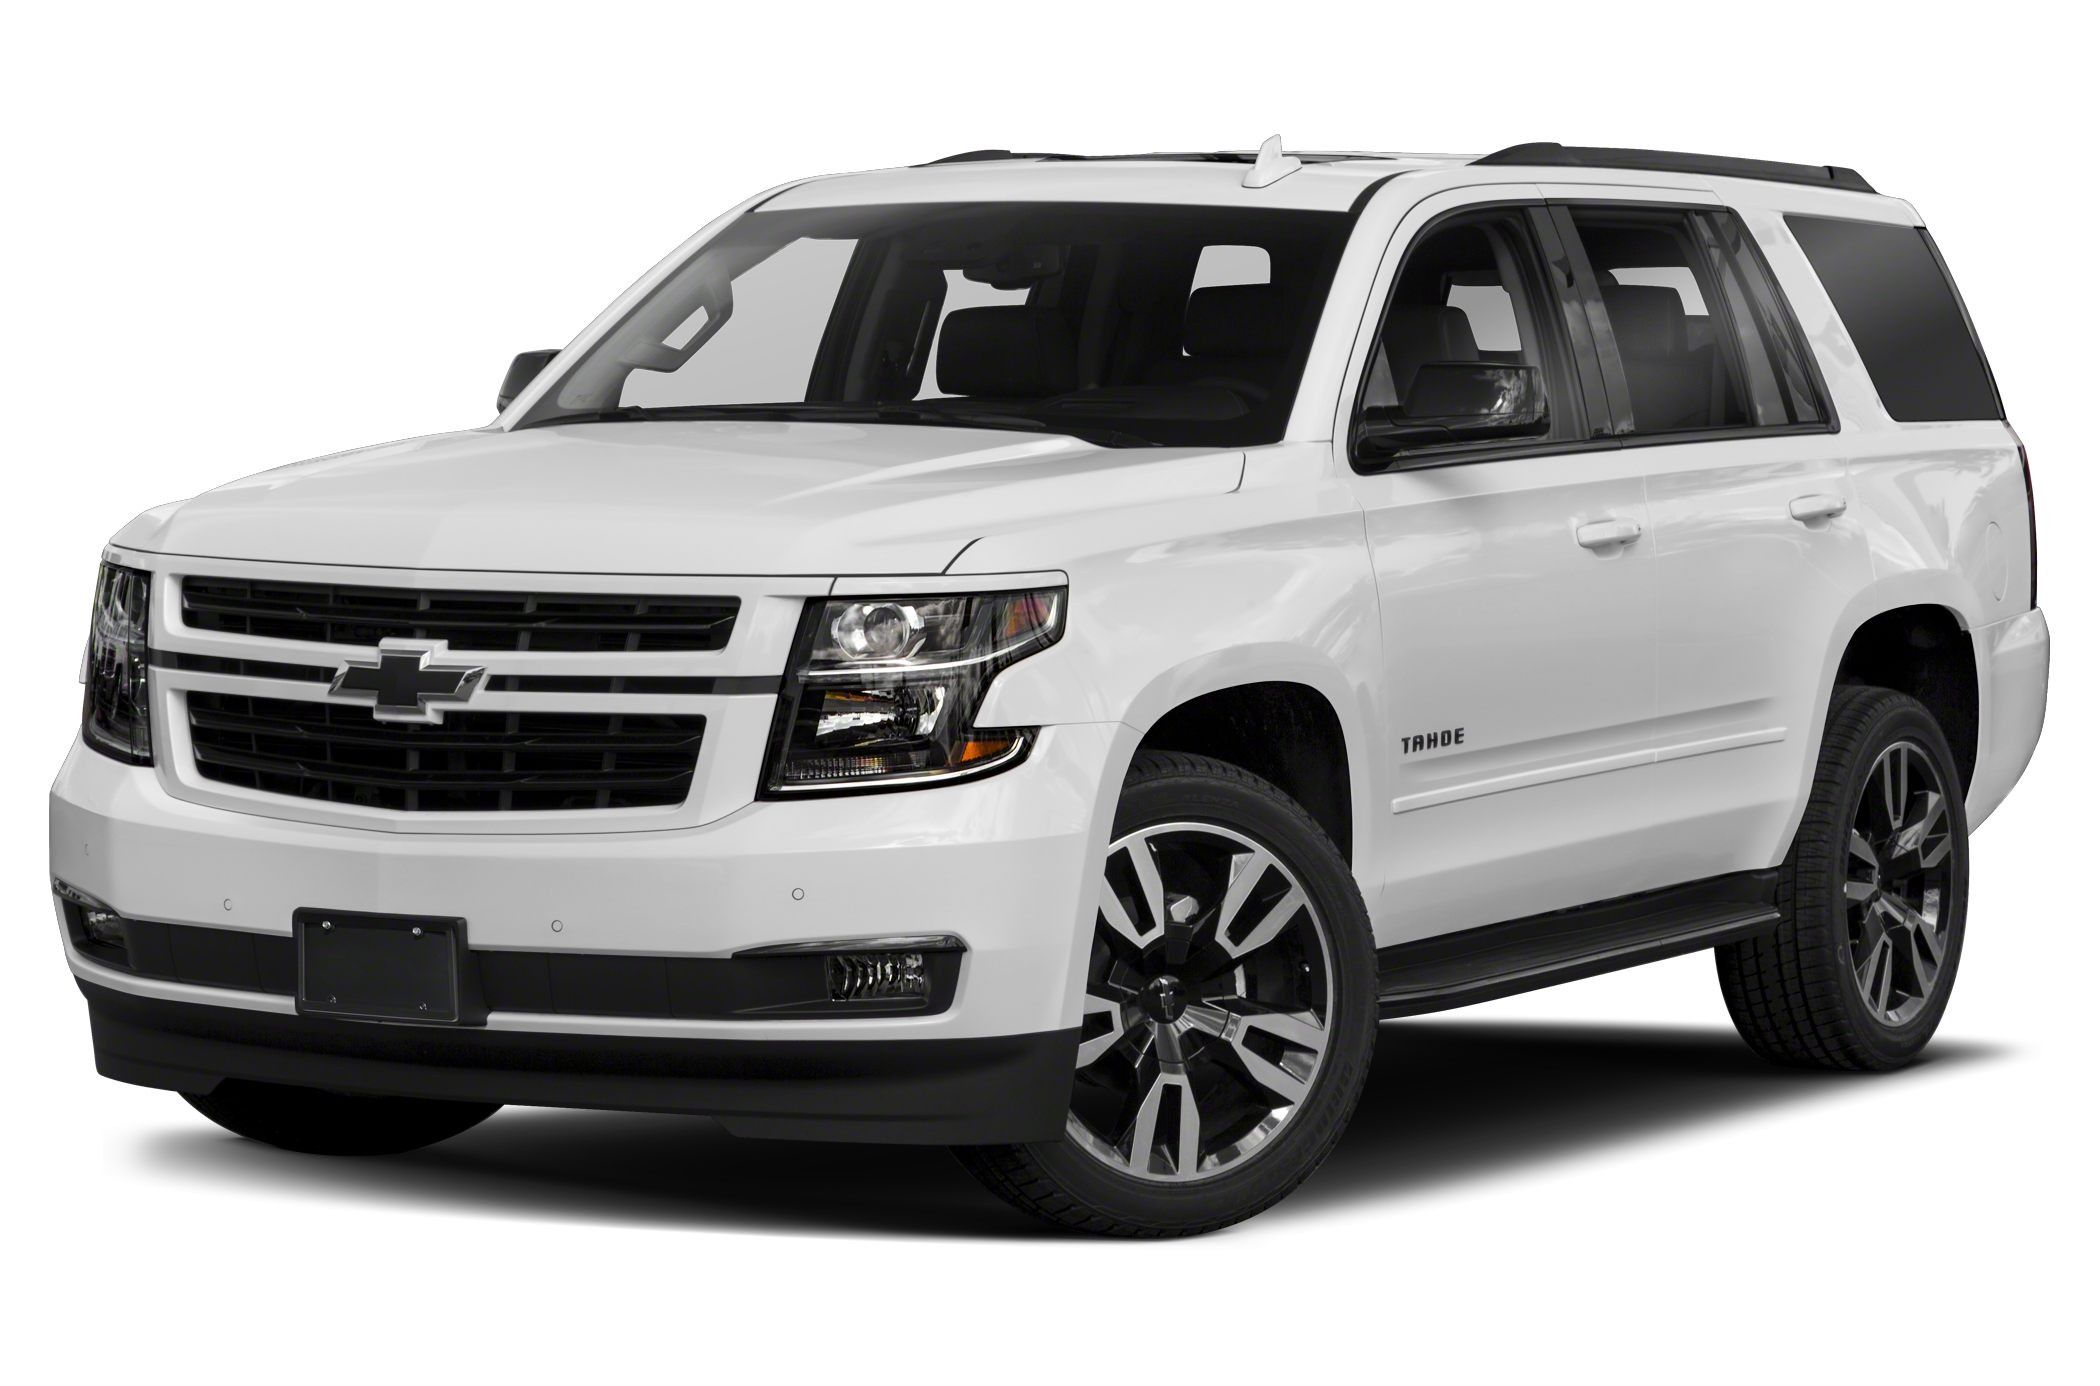 2018 Chevy Tahoe Rst Price Check More At Http Www Autocarblog